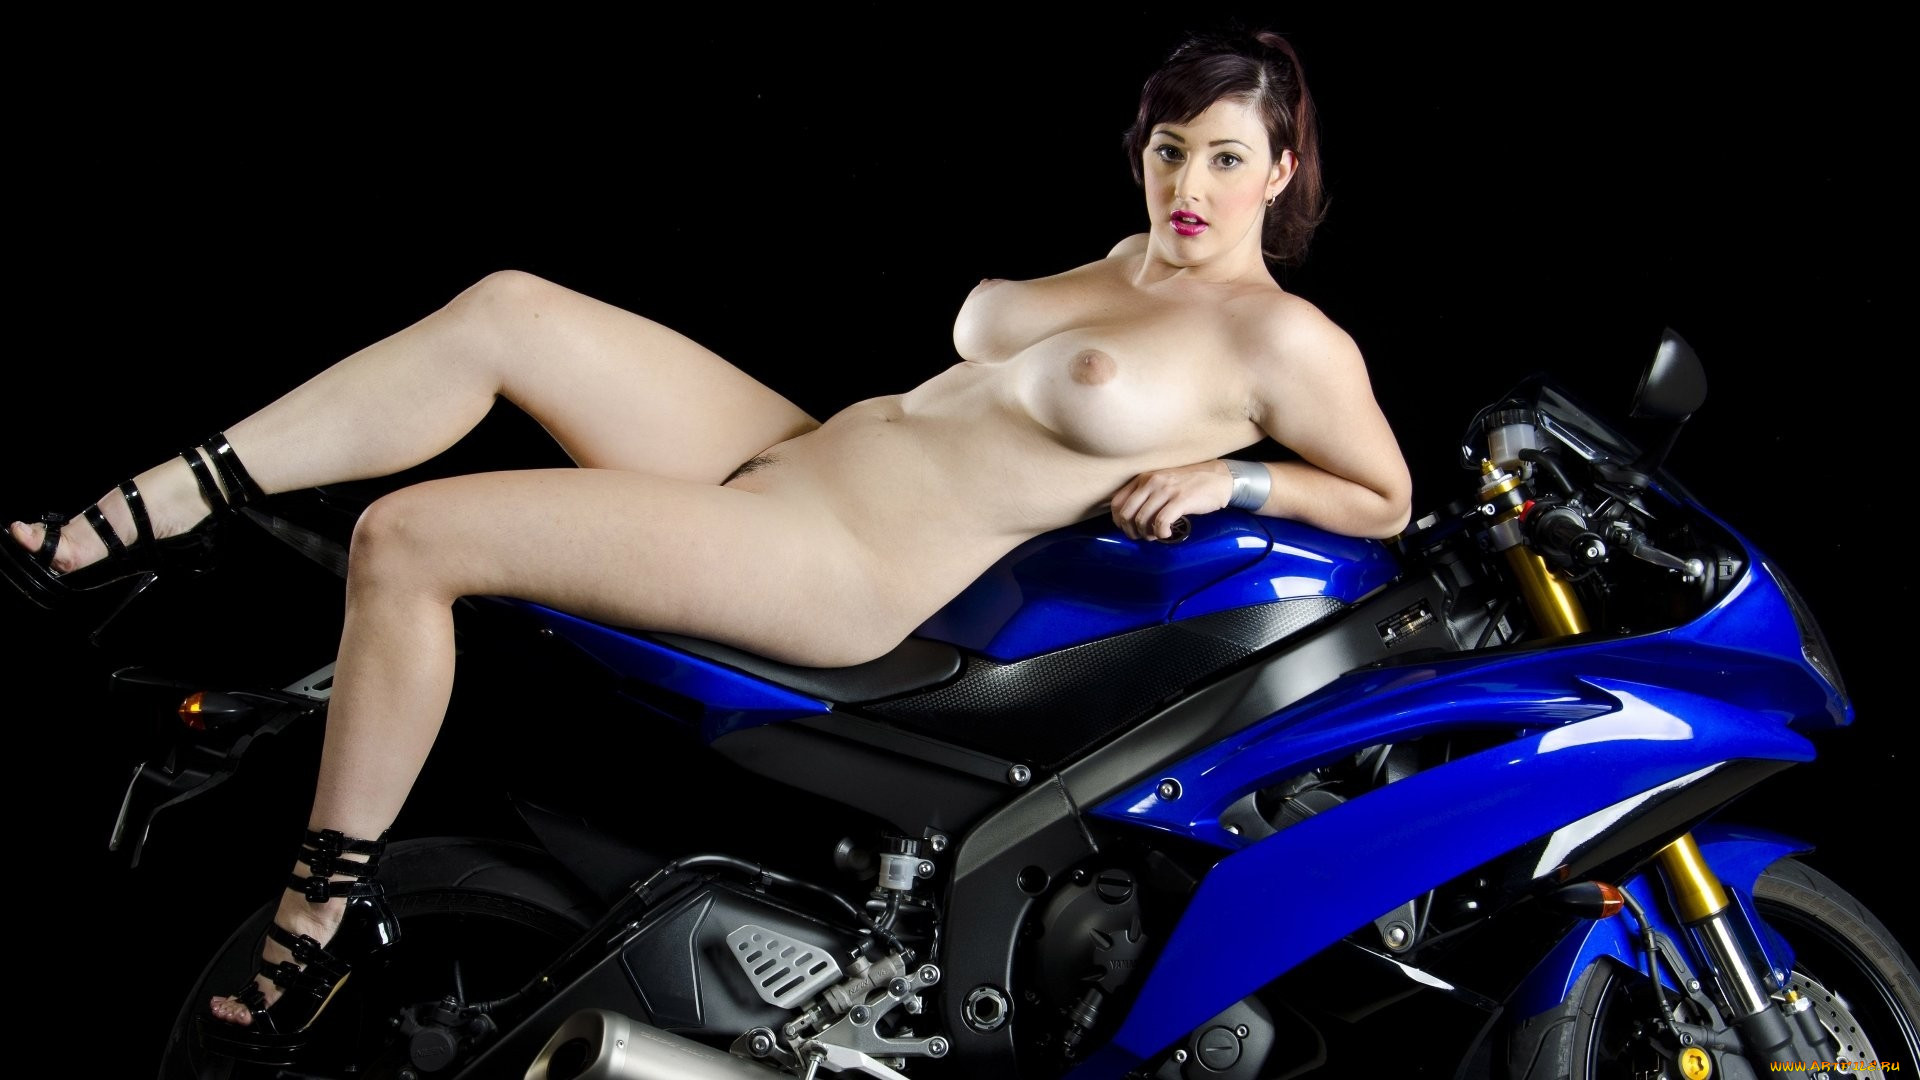 Erotic motorcbikers xxx image